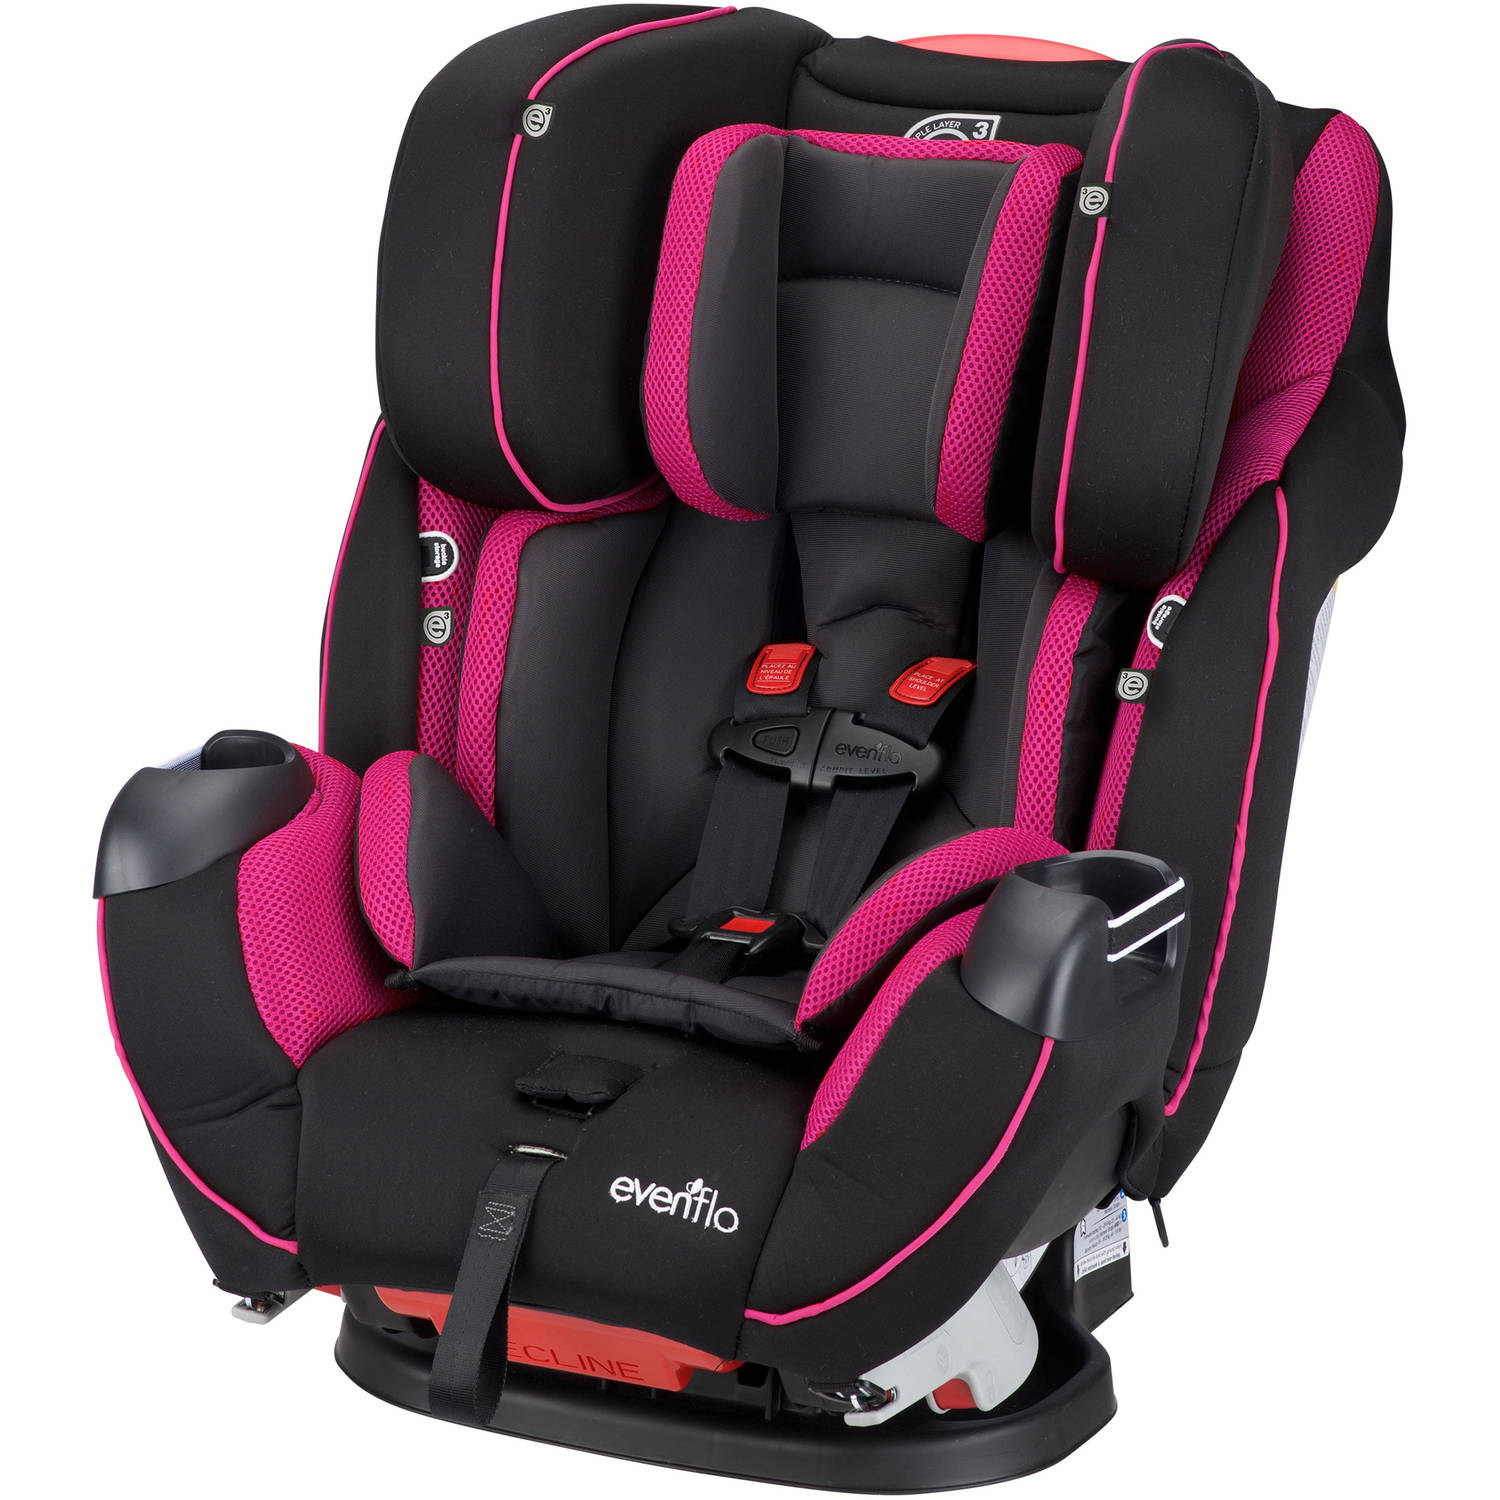 Evenflo Symphony DLX All-In-One Convertible Car Seat, Raspberry Sorbet by Evenflo